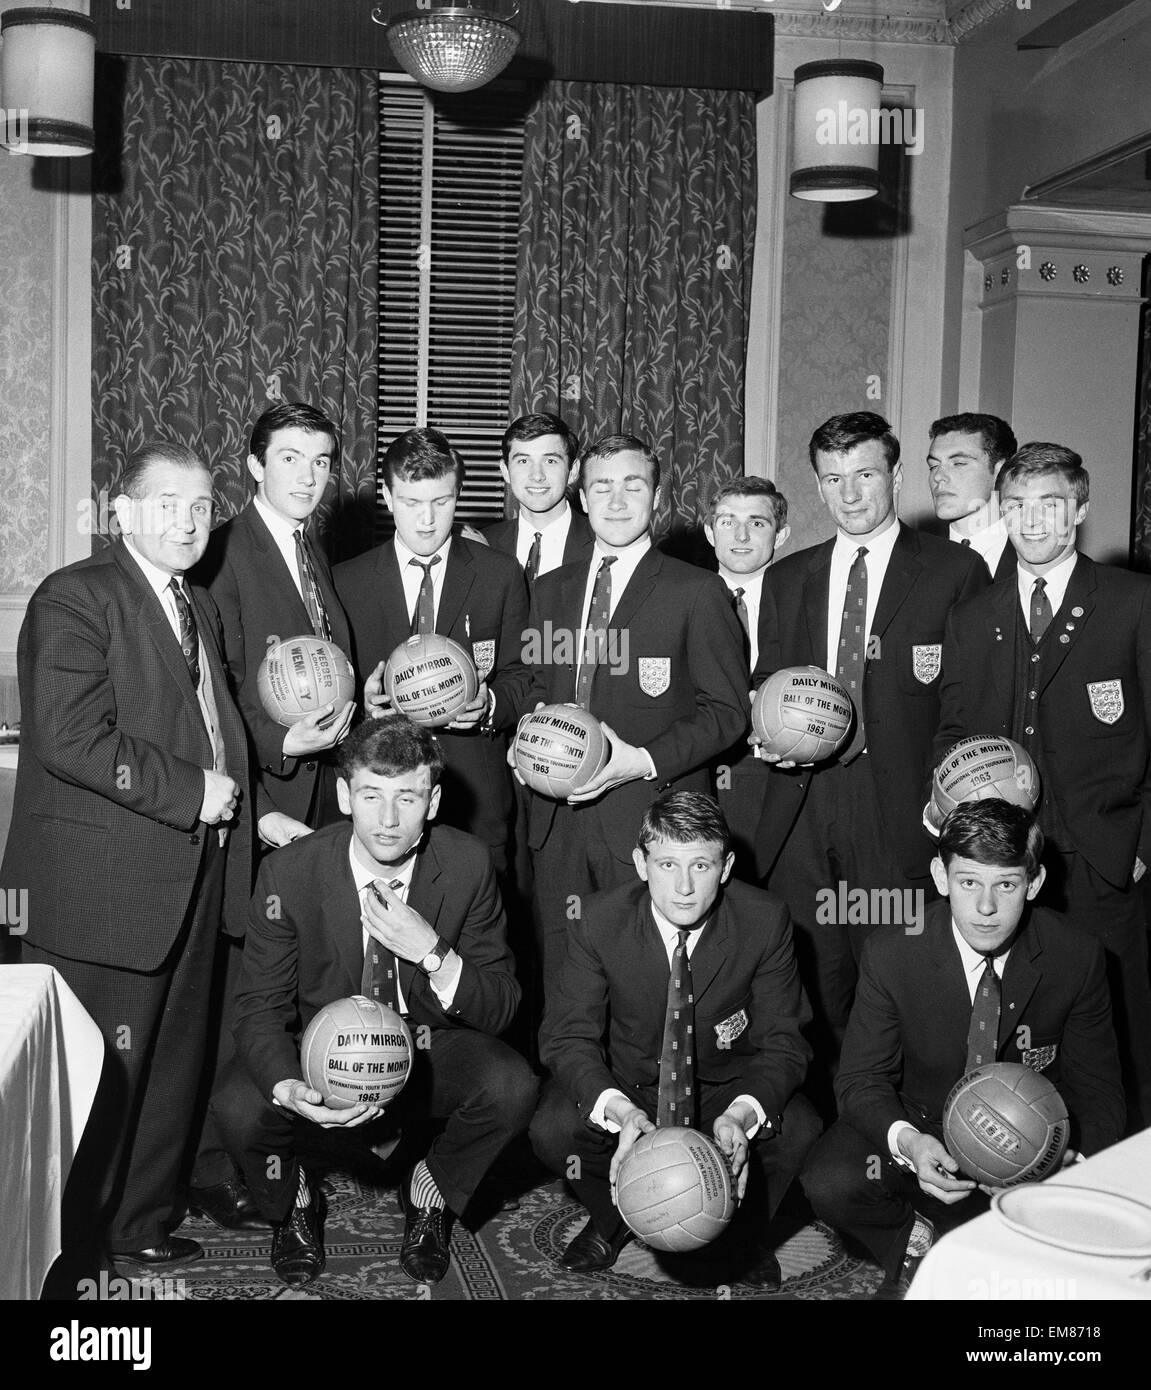 England Youth Team, Winners of the Junior World Cup, 24th April 1963. Pictured holding Daily Mirror Ball of the Stock Photo